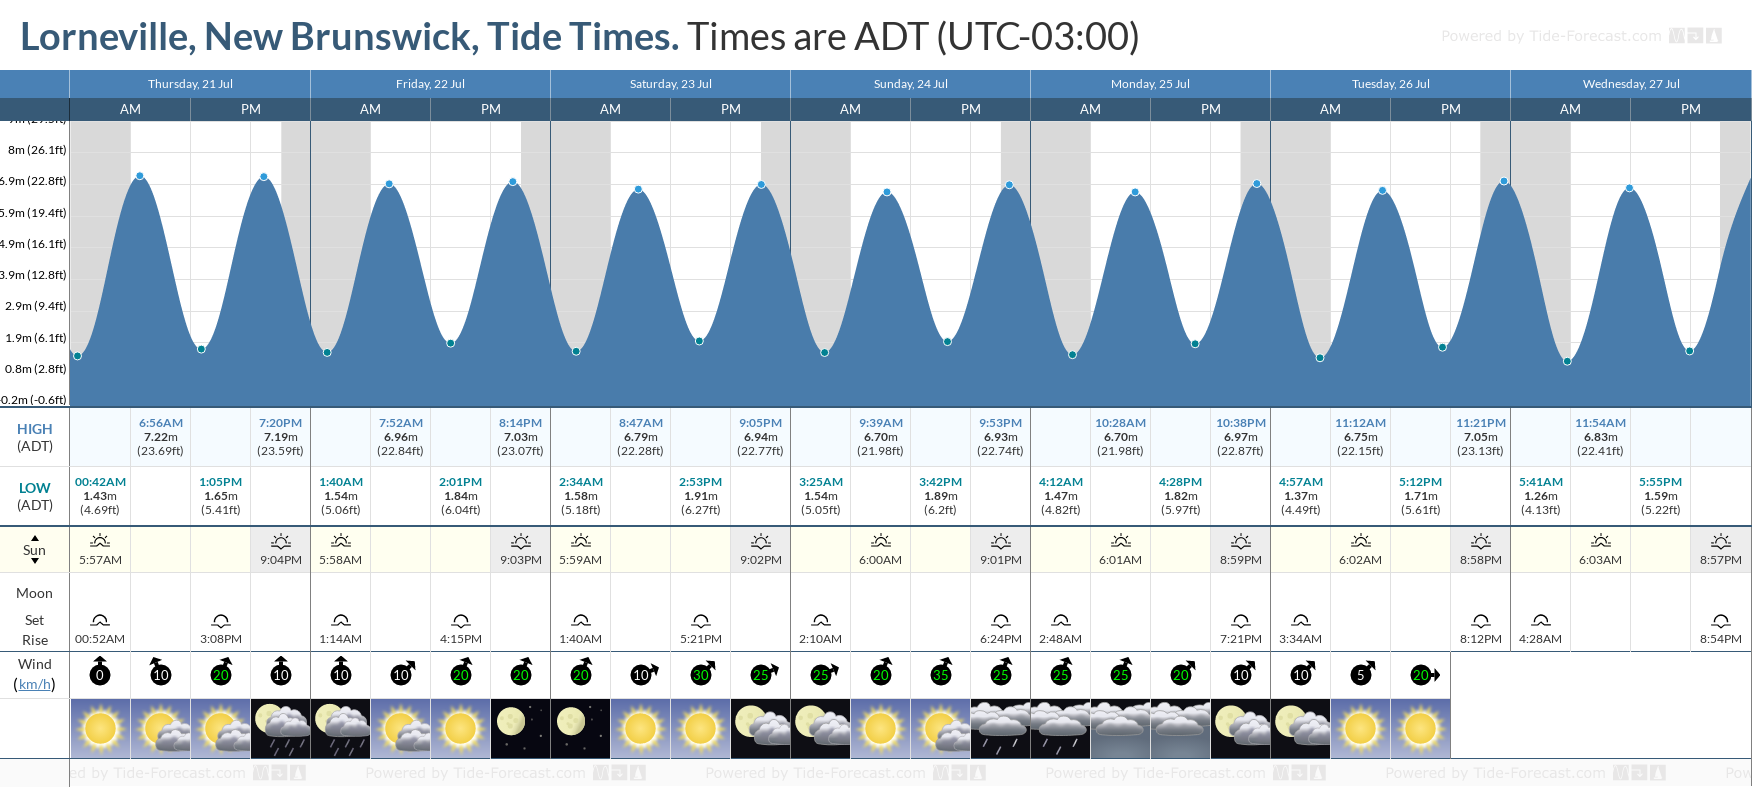 Lorneville, New Brunswick Tide Chart including high and low tide tide times for the next 7 days